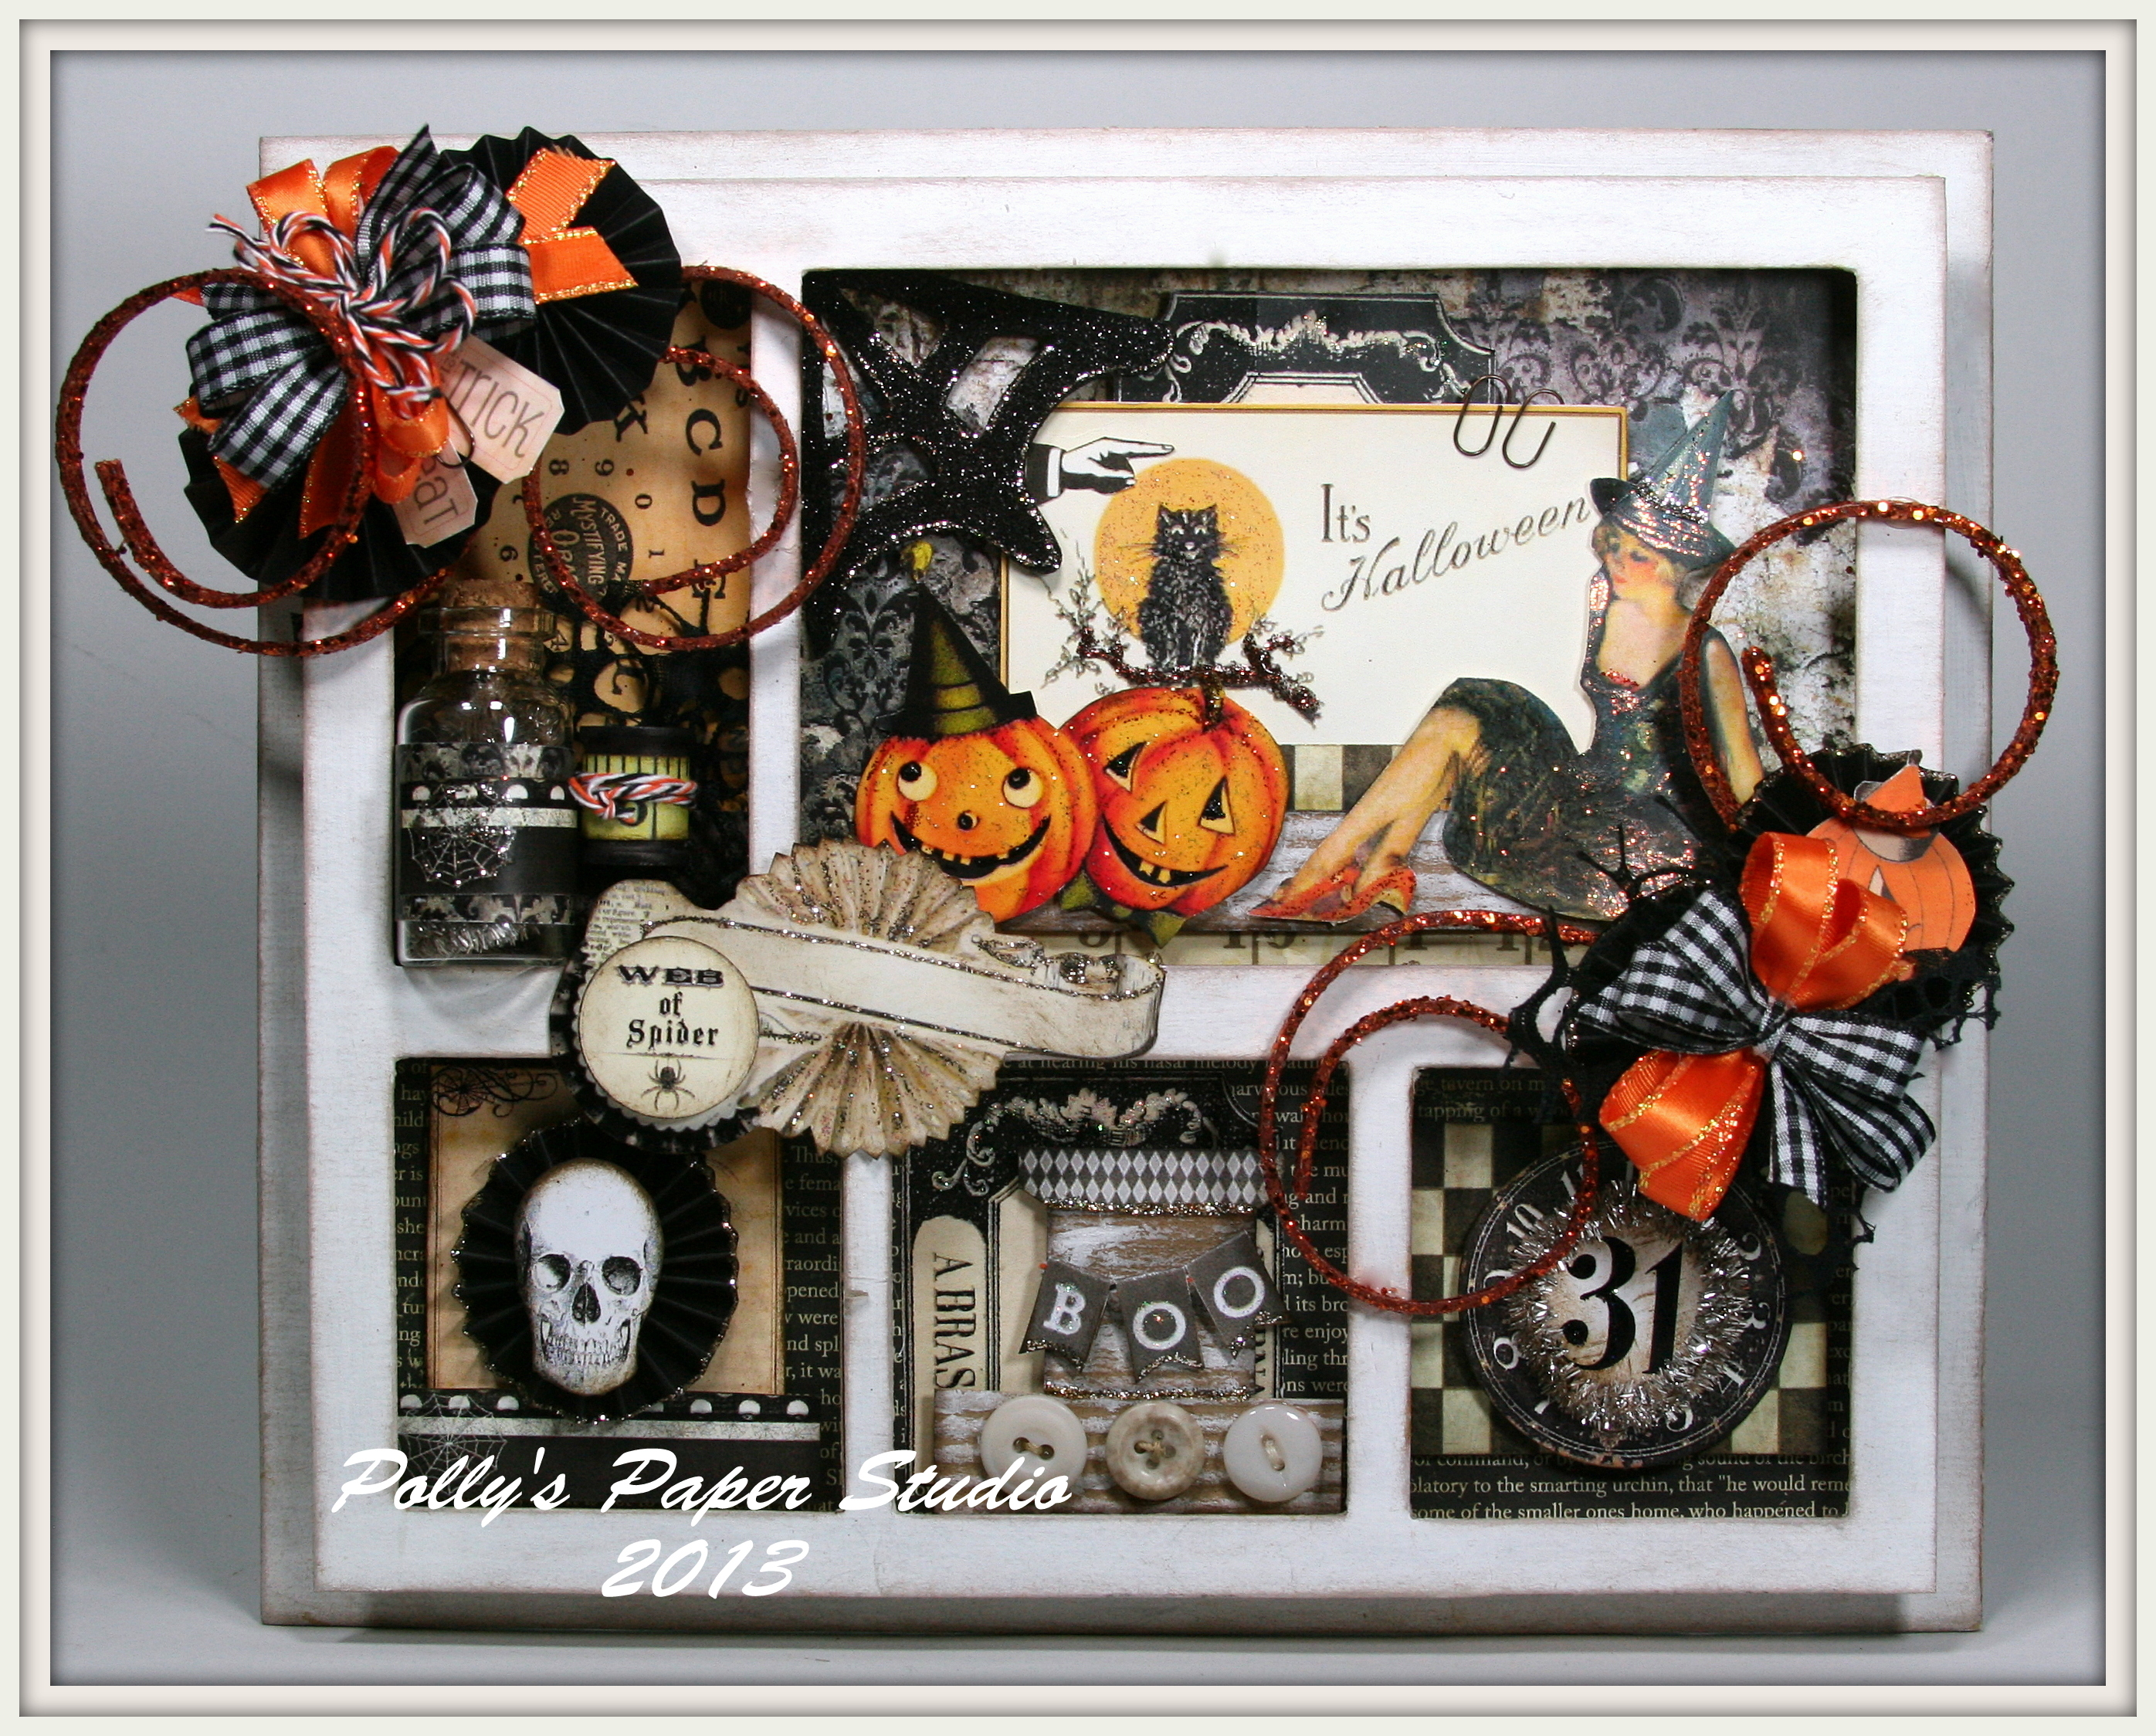 Vintage halloween paper decorations - I Recycled 2 Old Chipboard Mats And With The Help Of My Scor Buddy I Made Tiny Boxes To Sandwich Between Them To Create A Spooky Shadow Box To Decorate My